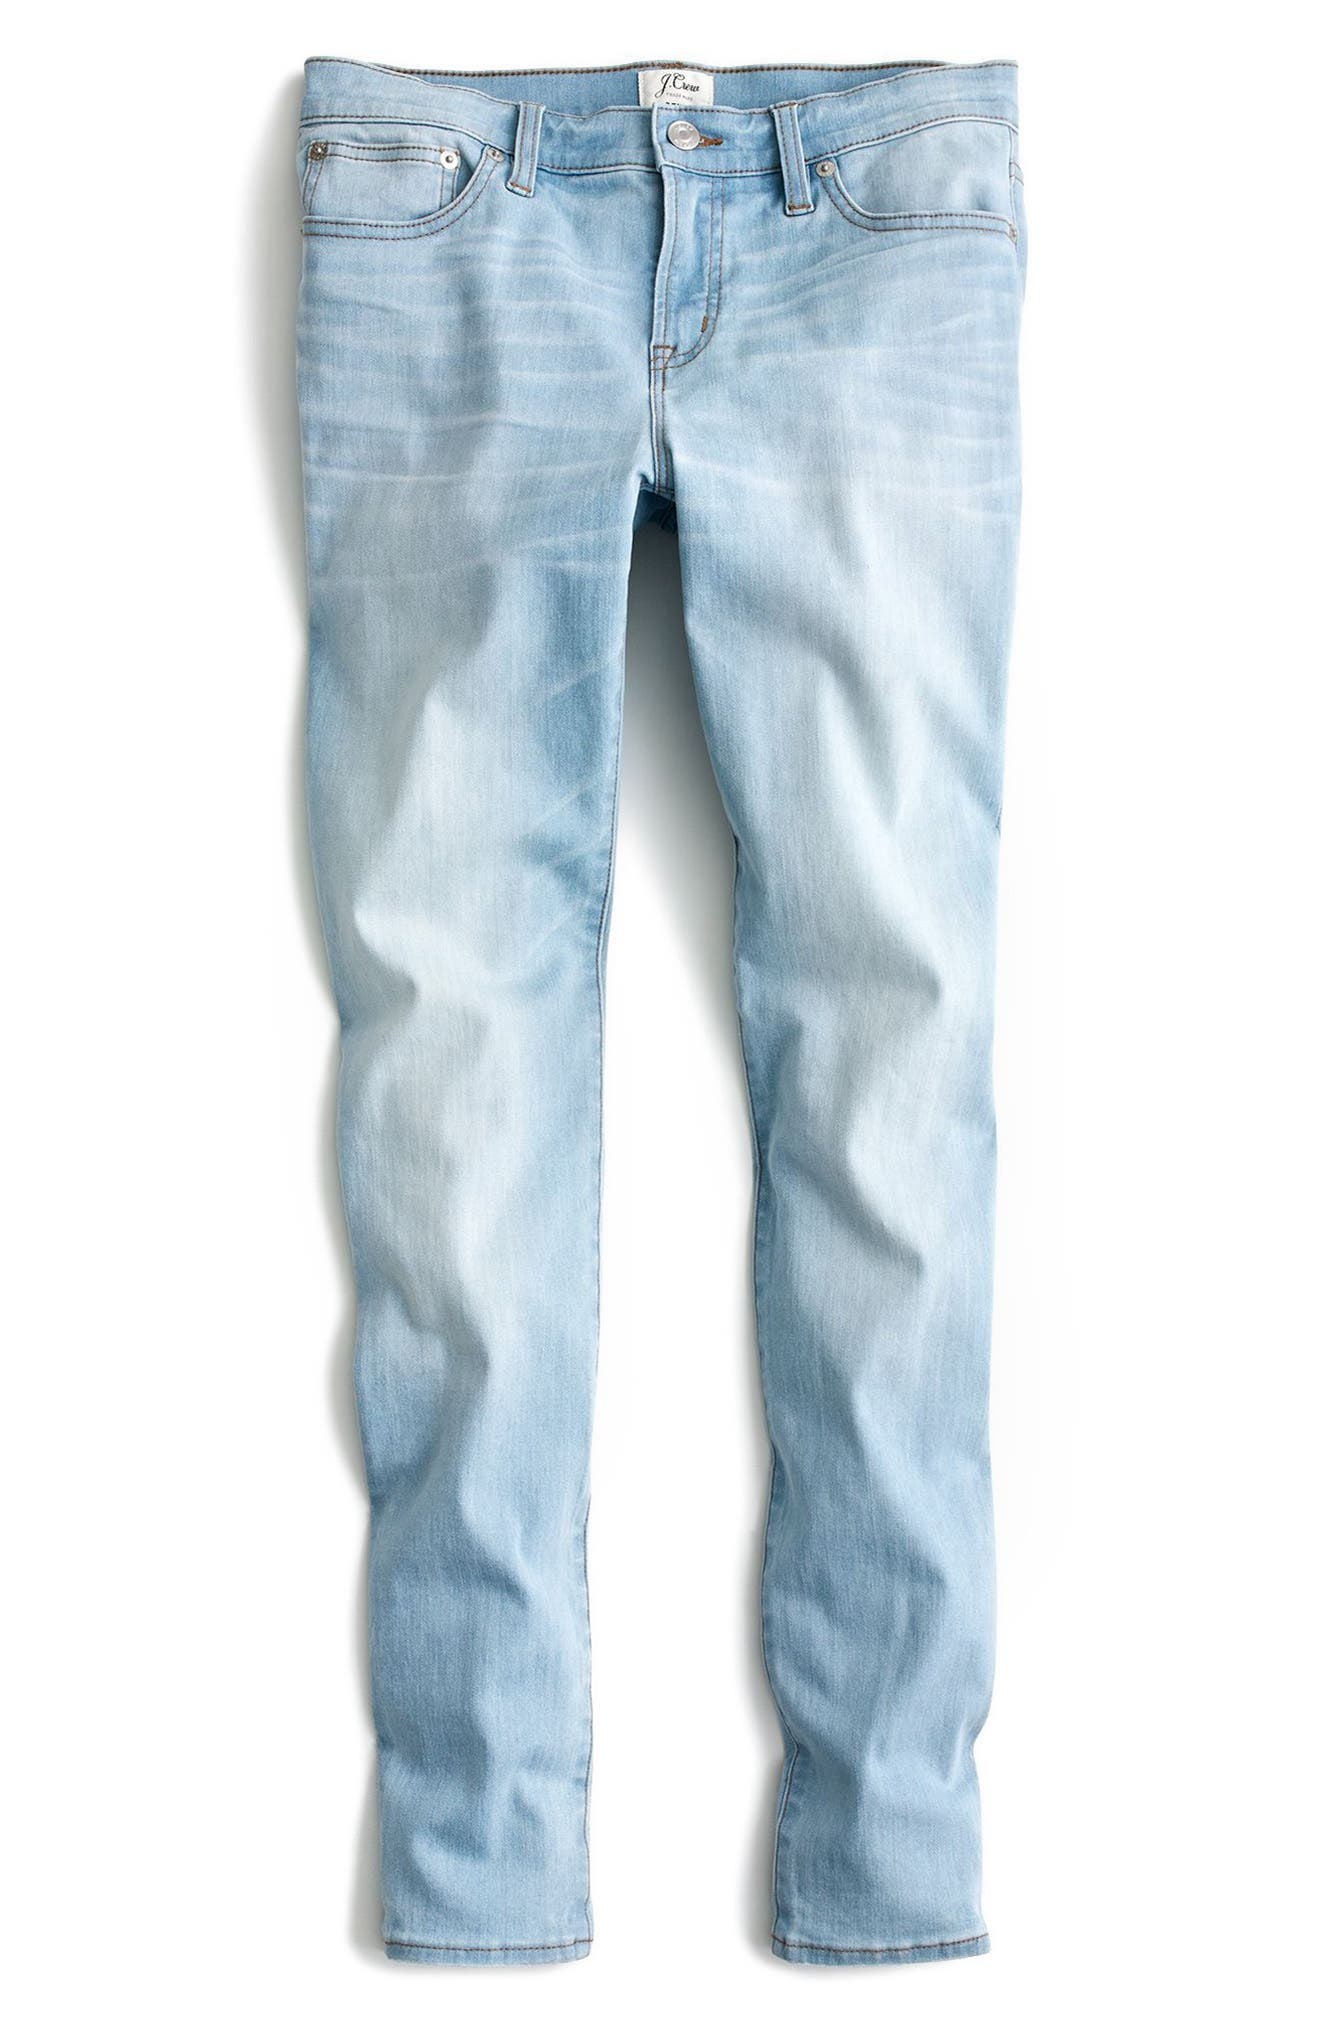 Toothpick Jeans,                             Alternate thumbnail 3, color,                             Charles Field Wash